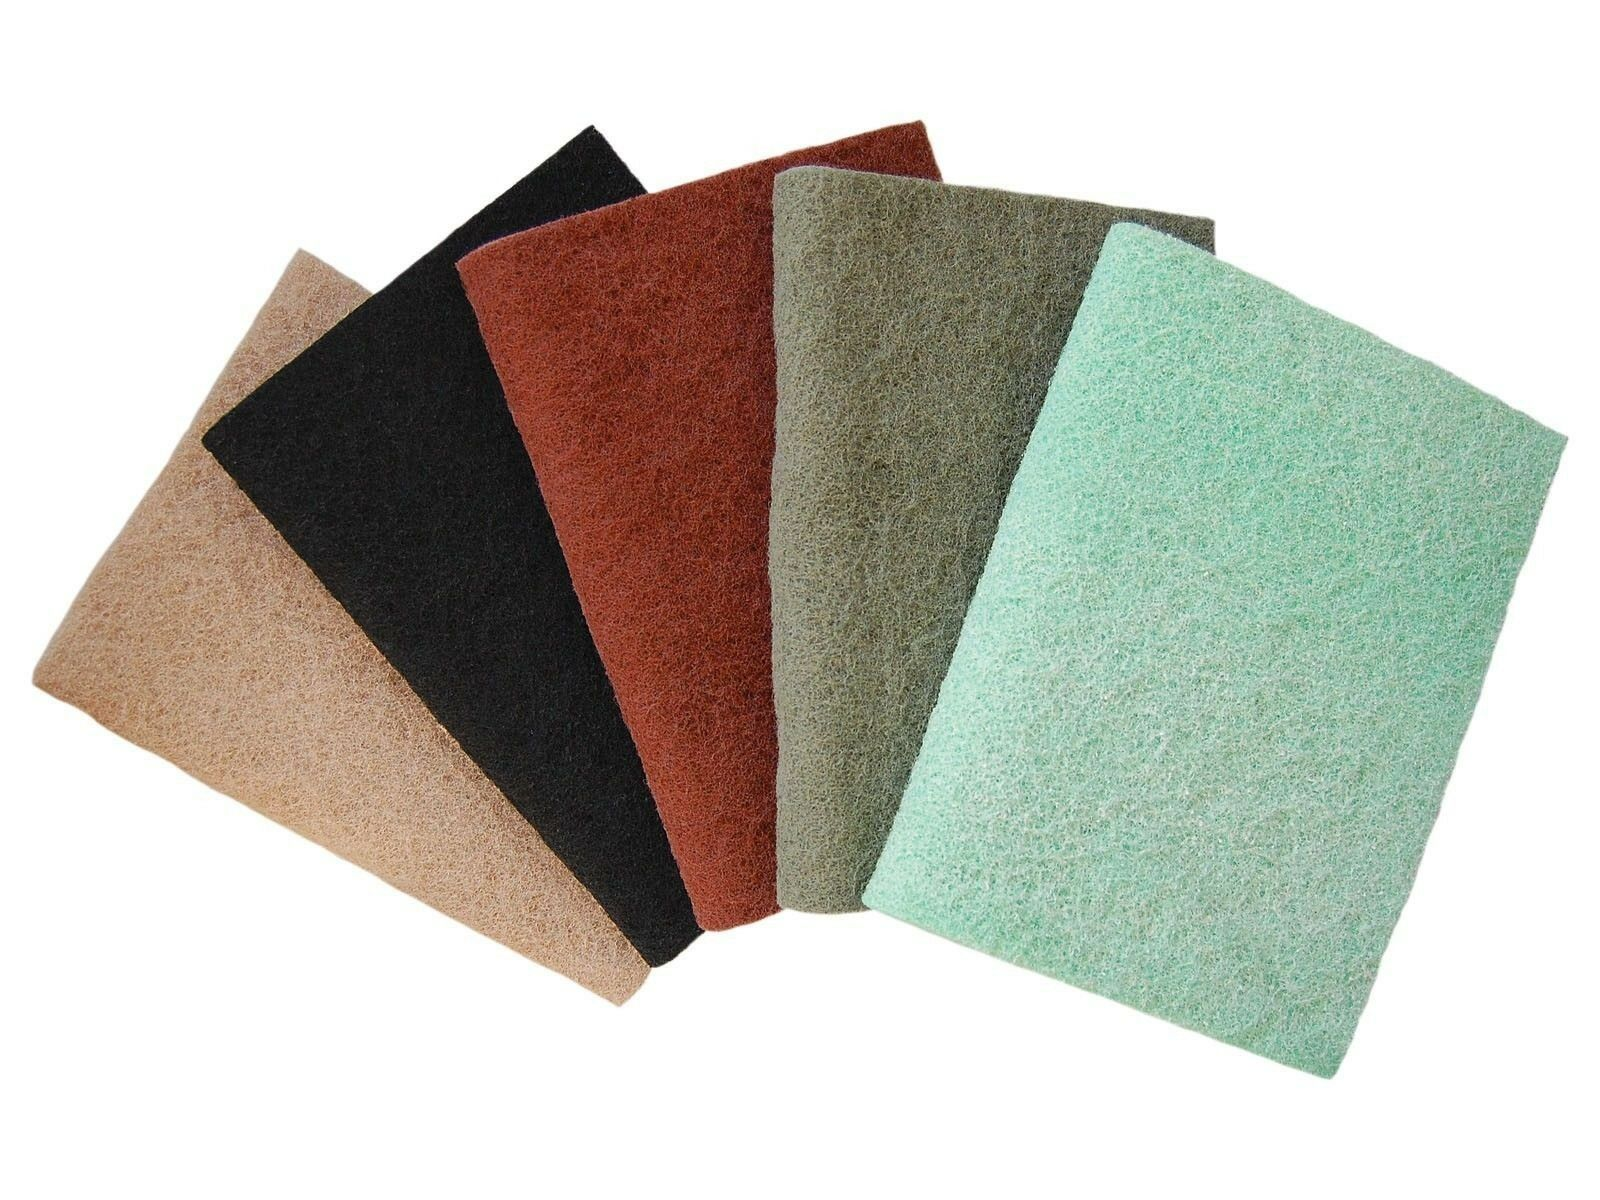 FILTER PADS (Economical Cut To Fit Most Filters) COMPLETE LOW COST FILTRATION